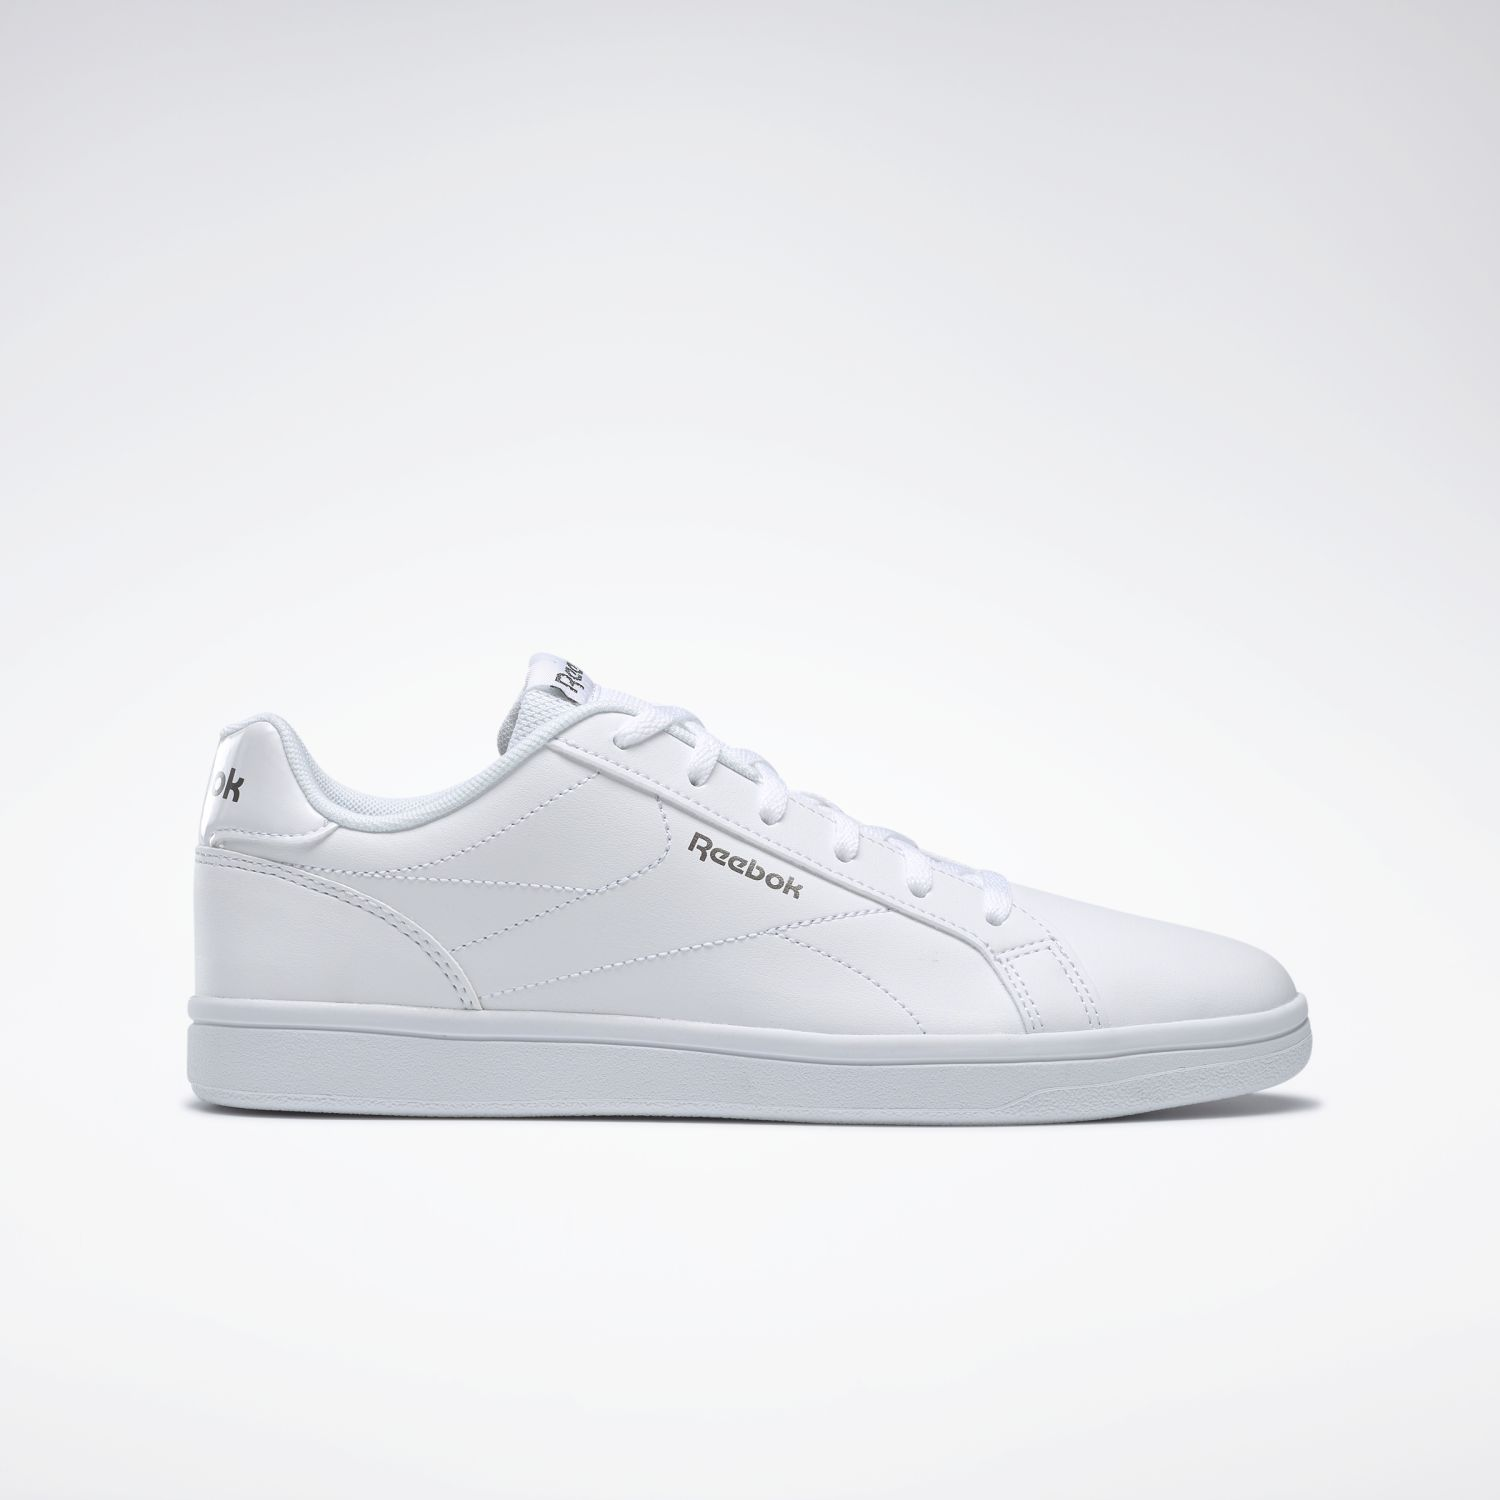 Reebok reebok royal comple Blanco Walking